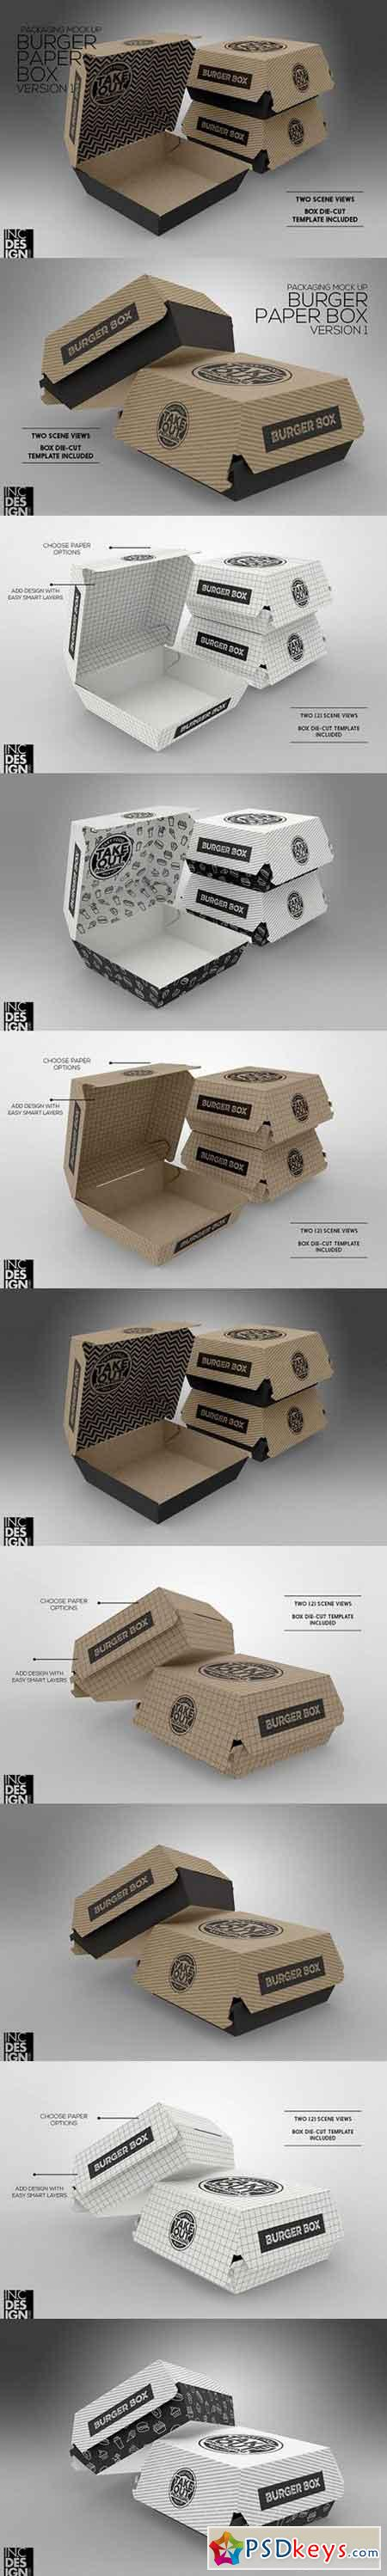 Burger Box Packaging MockUp v.1 1319395